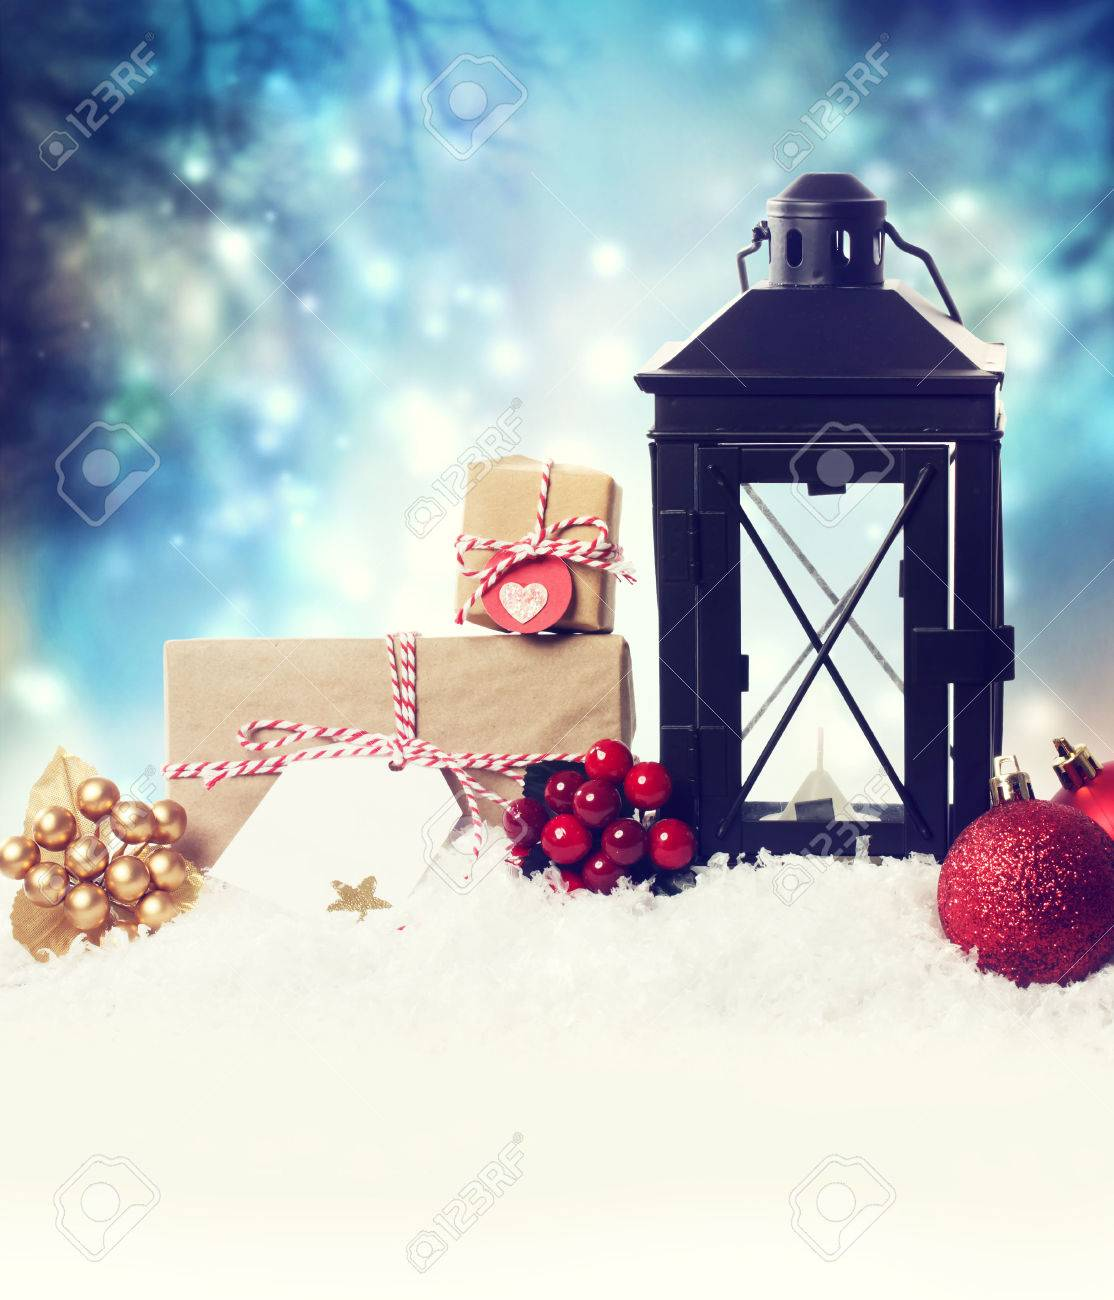 Christmas lantern with ornaments in the snow at night Stock Photo - 22876154